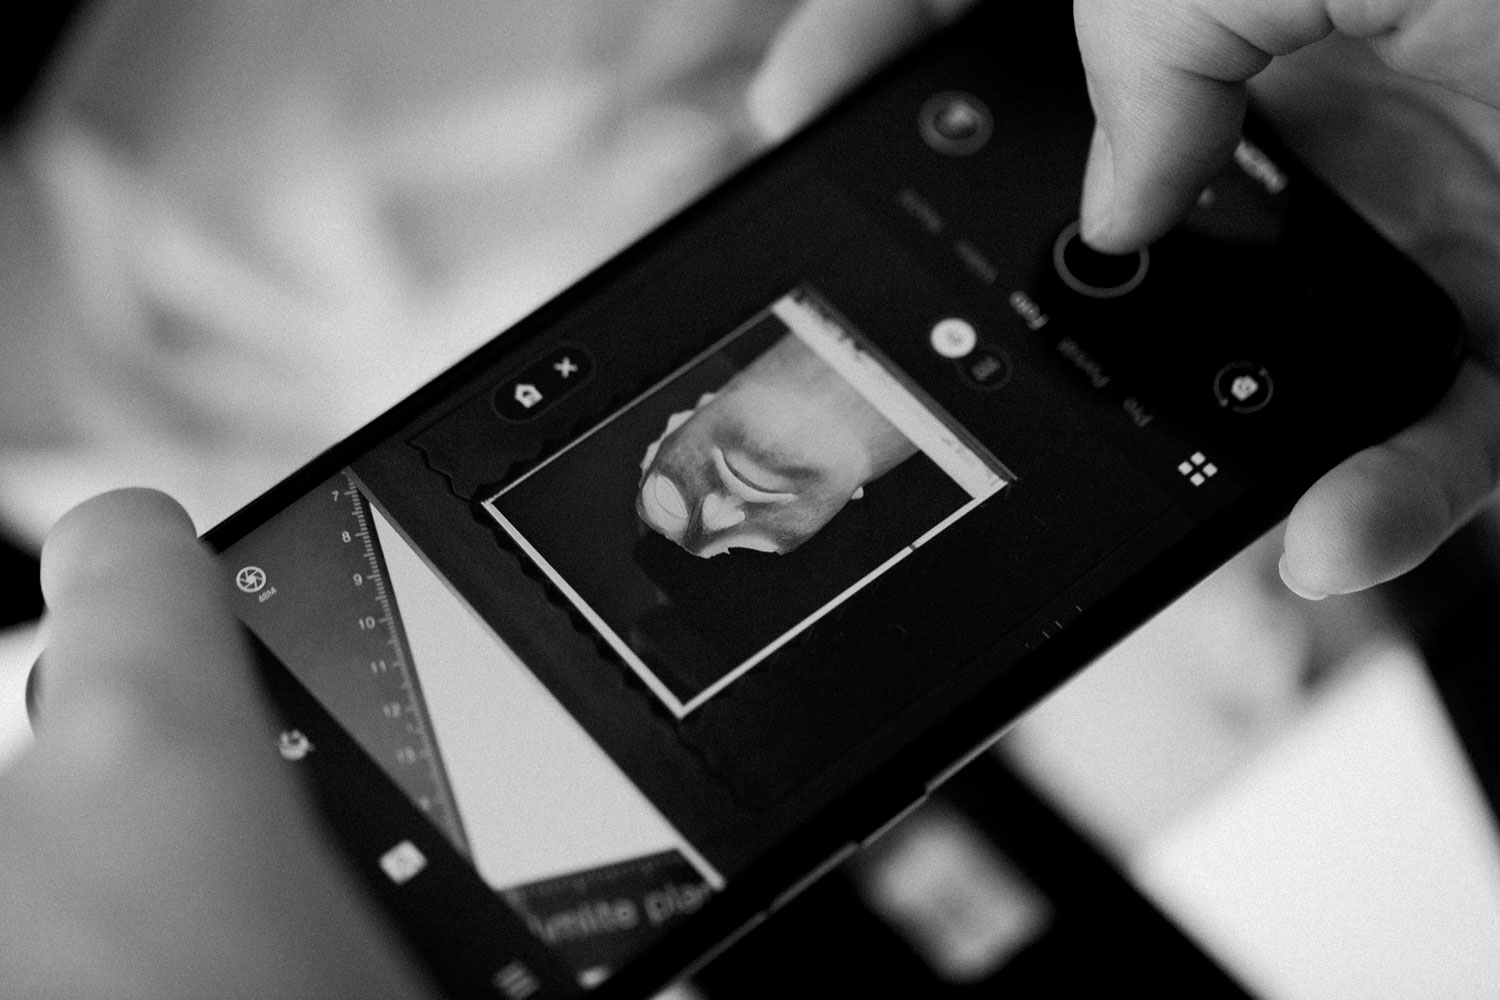 Scanning film negatives with a mobile phone. Credit: Ludwig Hagelstein